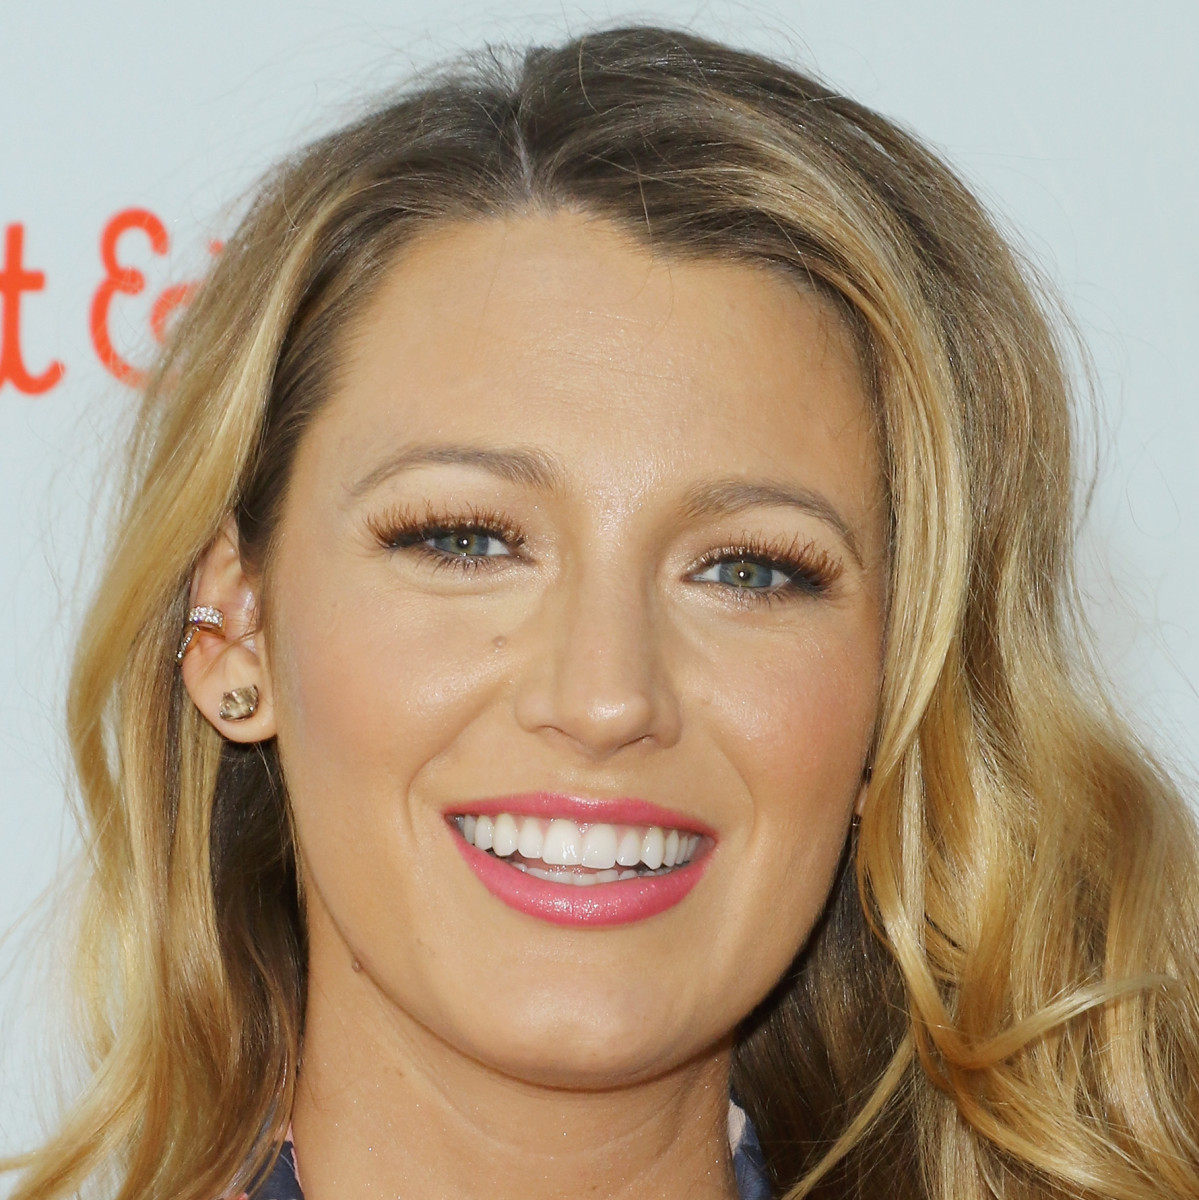 Blake Lively - Movies, Husband & Children - Biography